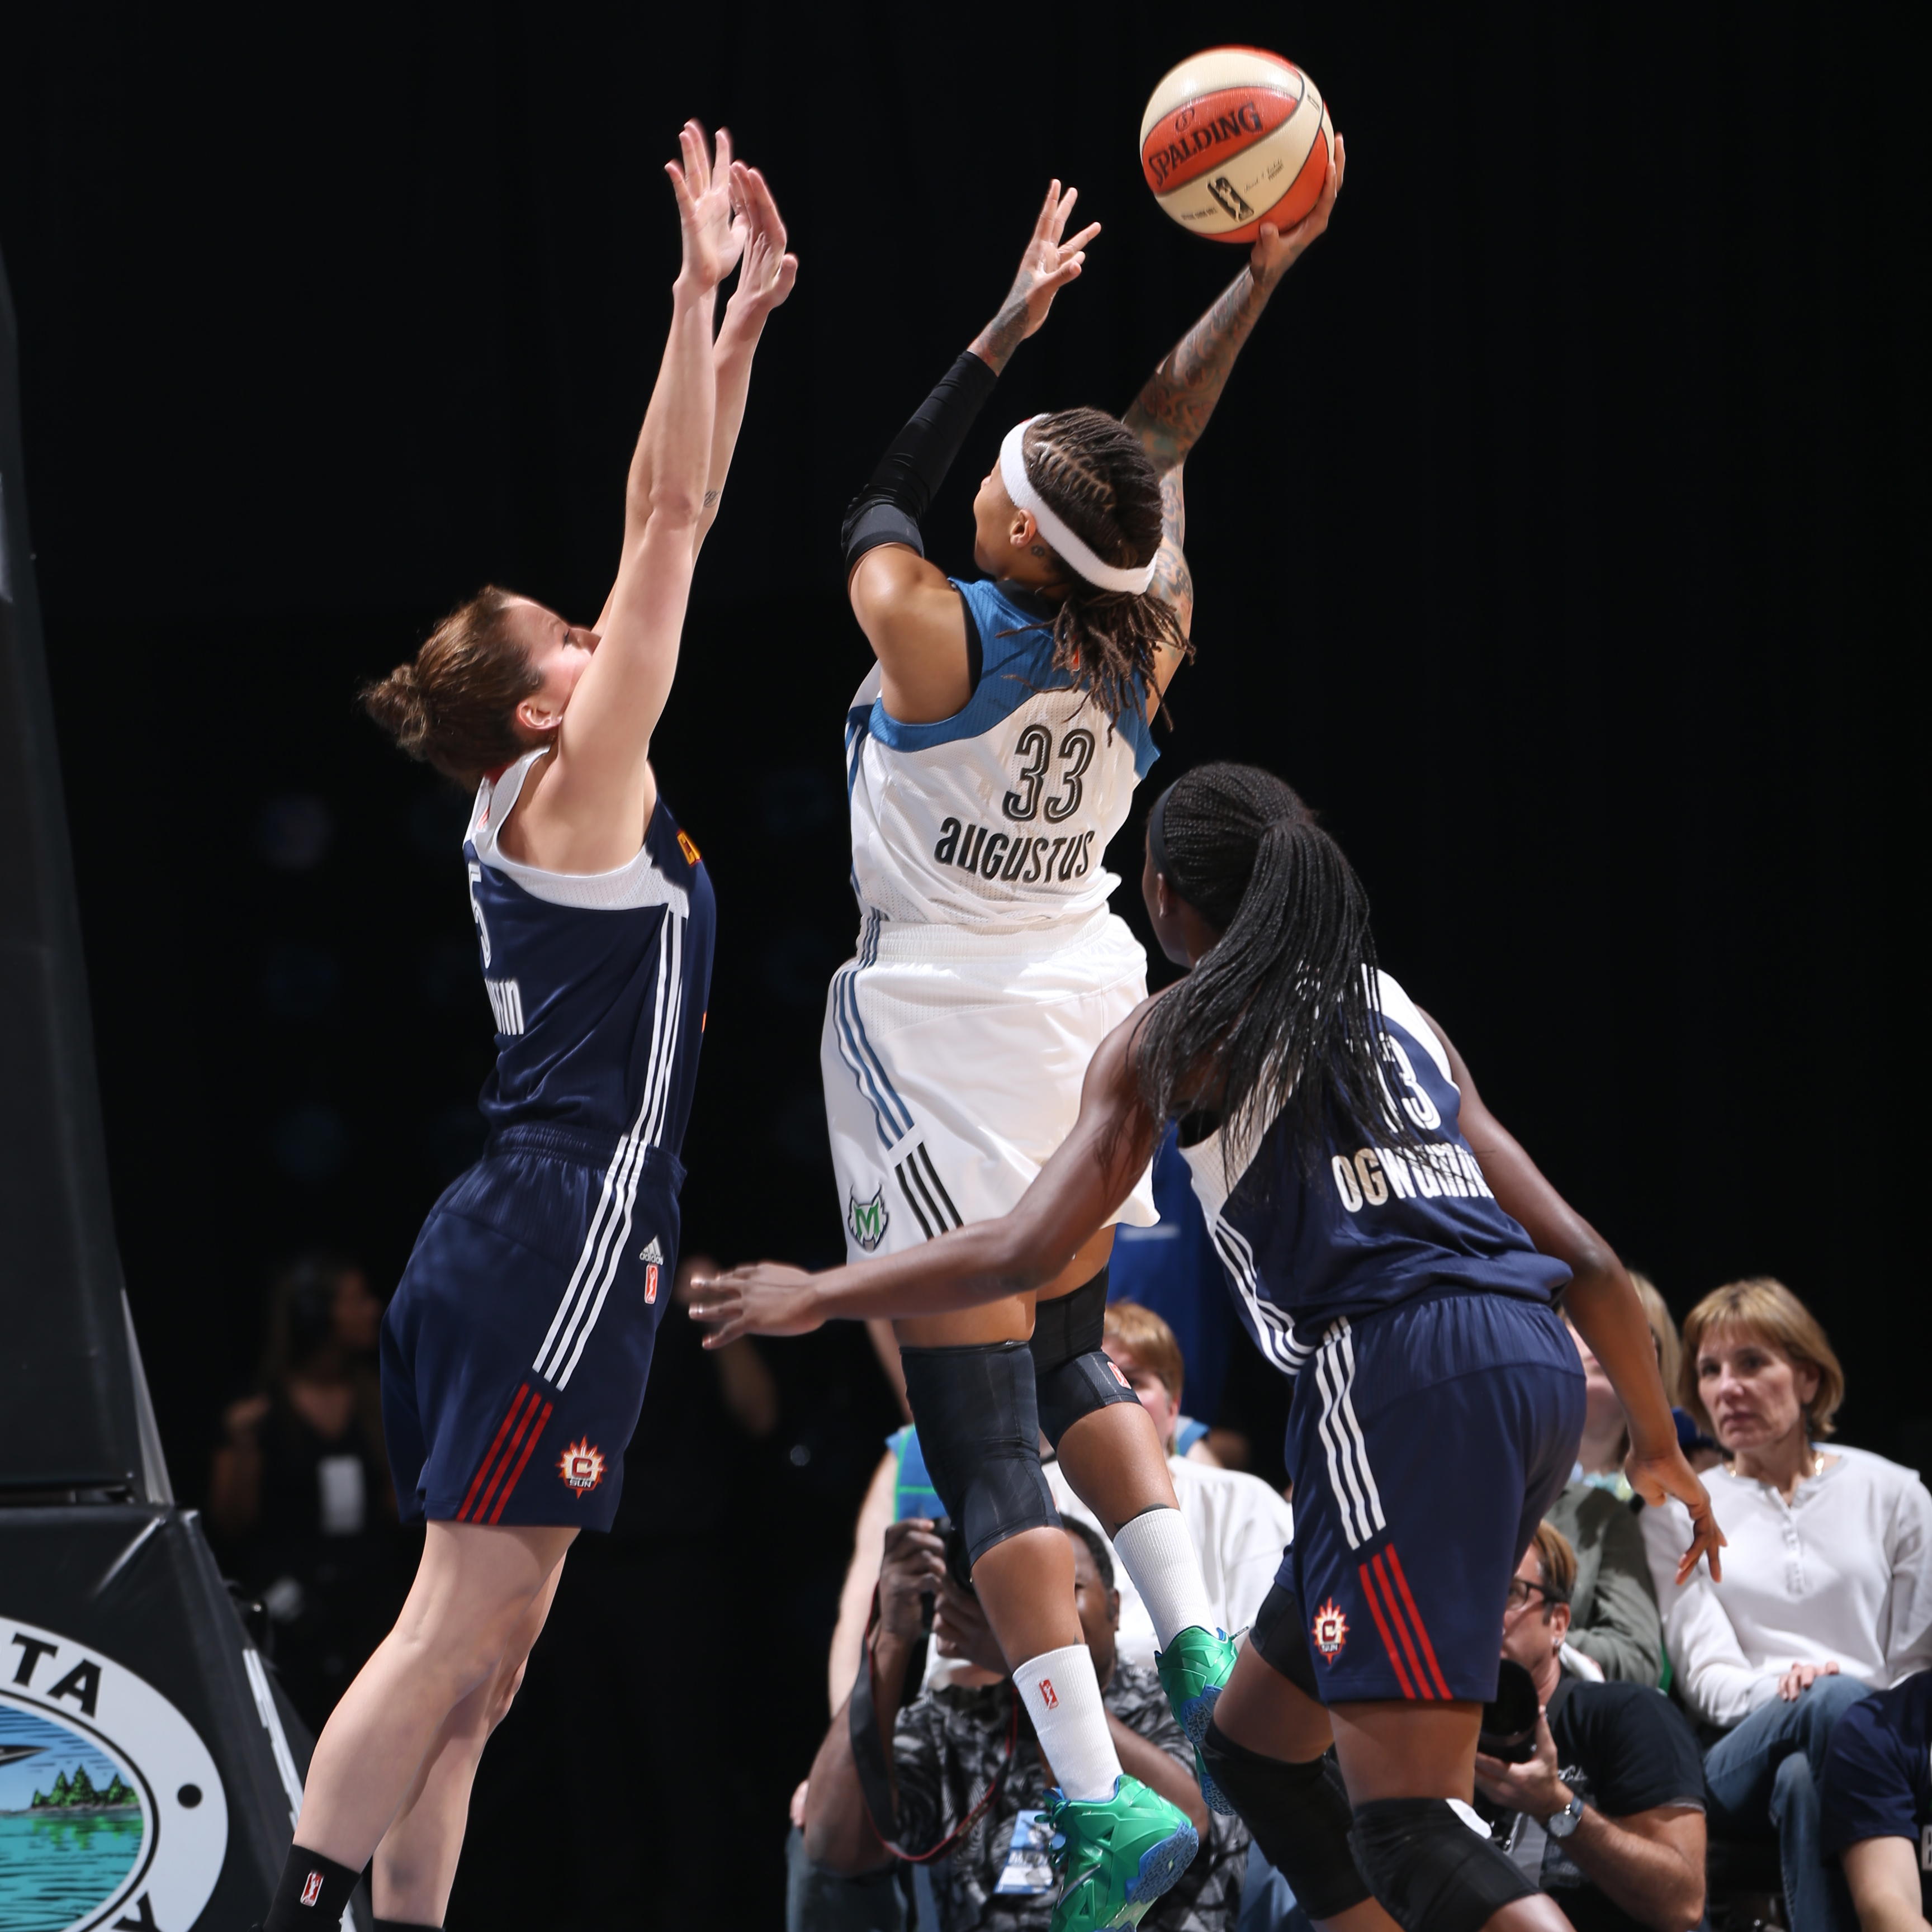 2014's Home-Opener: Lynx guard Seimone Augustus, despite committing five turnovers, still scored 18 points to help the Lynx to victory.